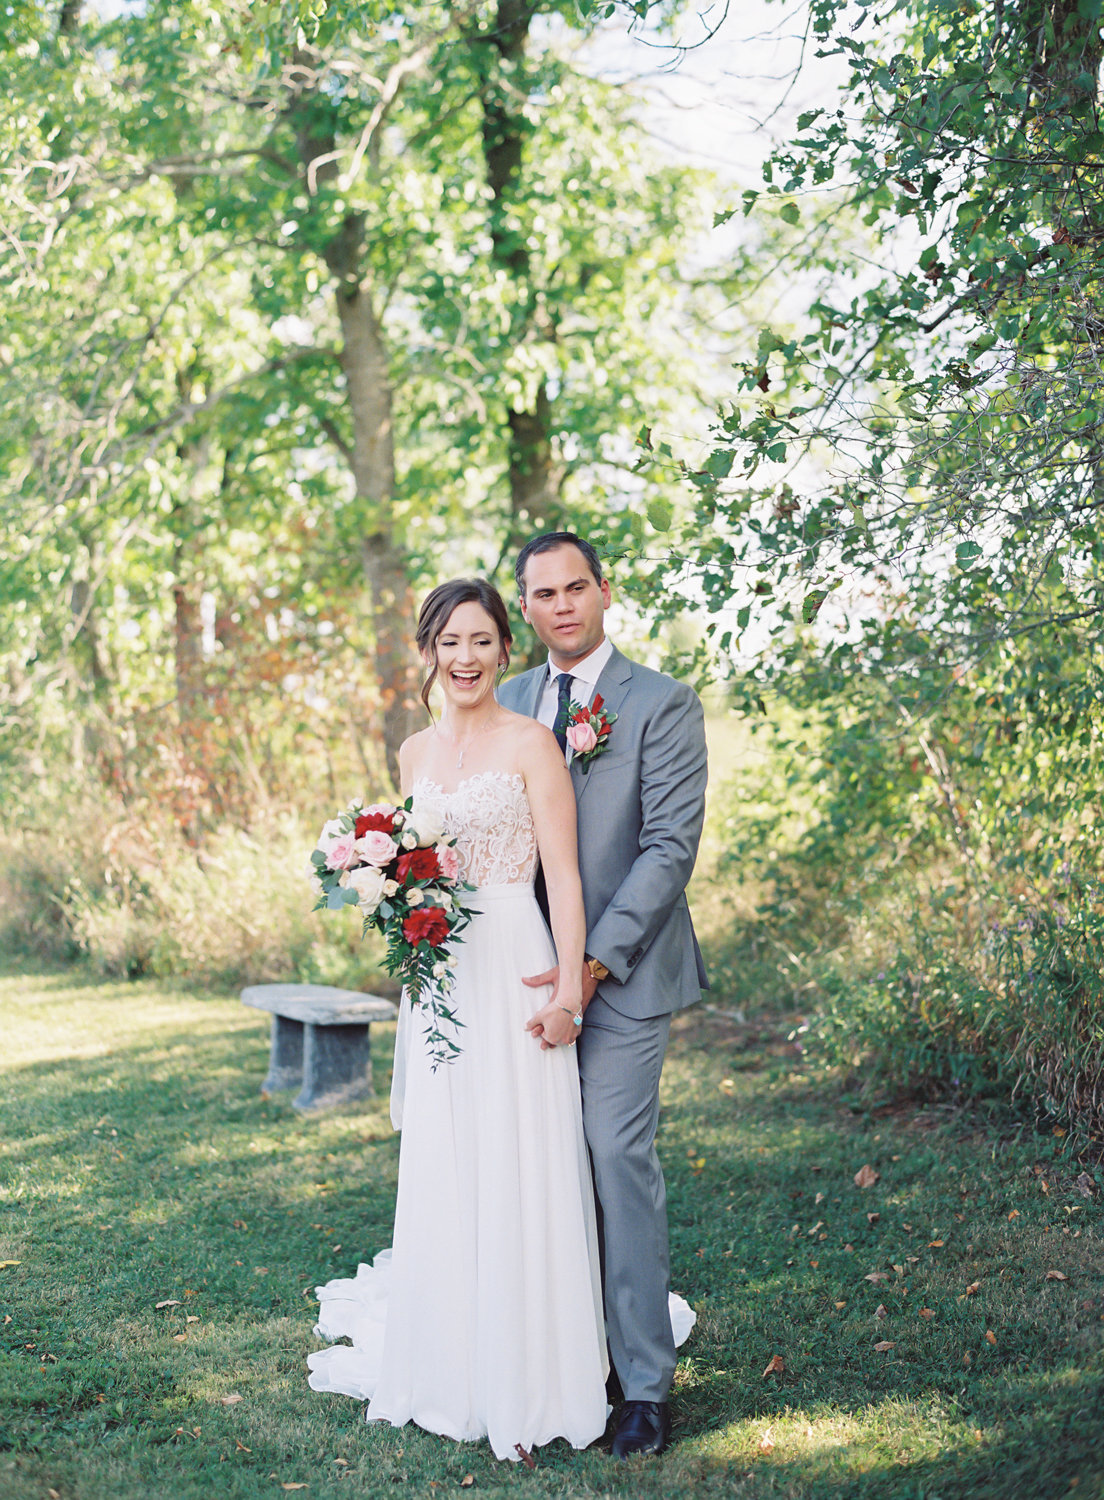 Jacqueline Anne Photography - Ottawa vineyard wedding-19